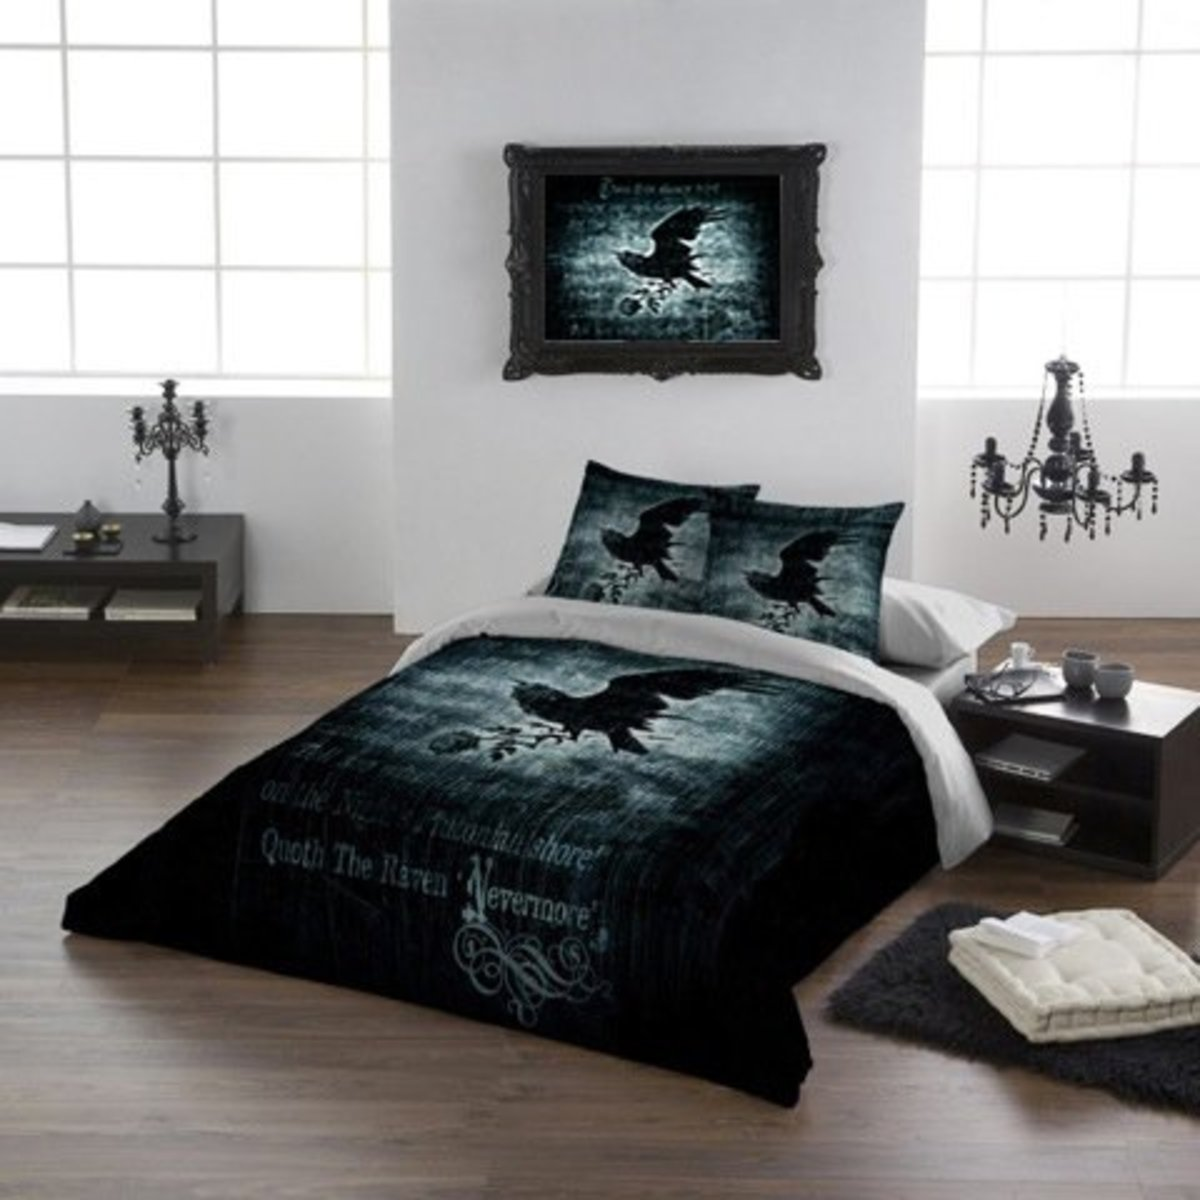 How To Decorate A Gothic Bedroom For A Girl Hubpages